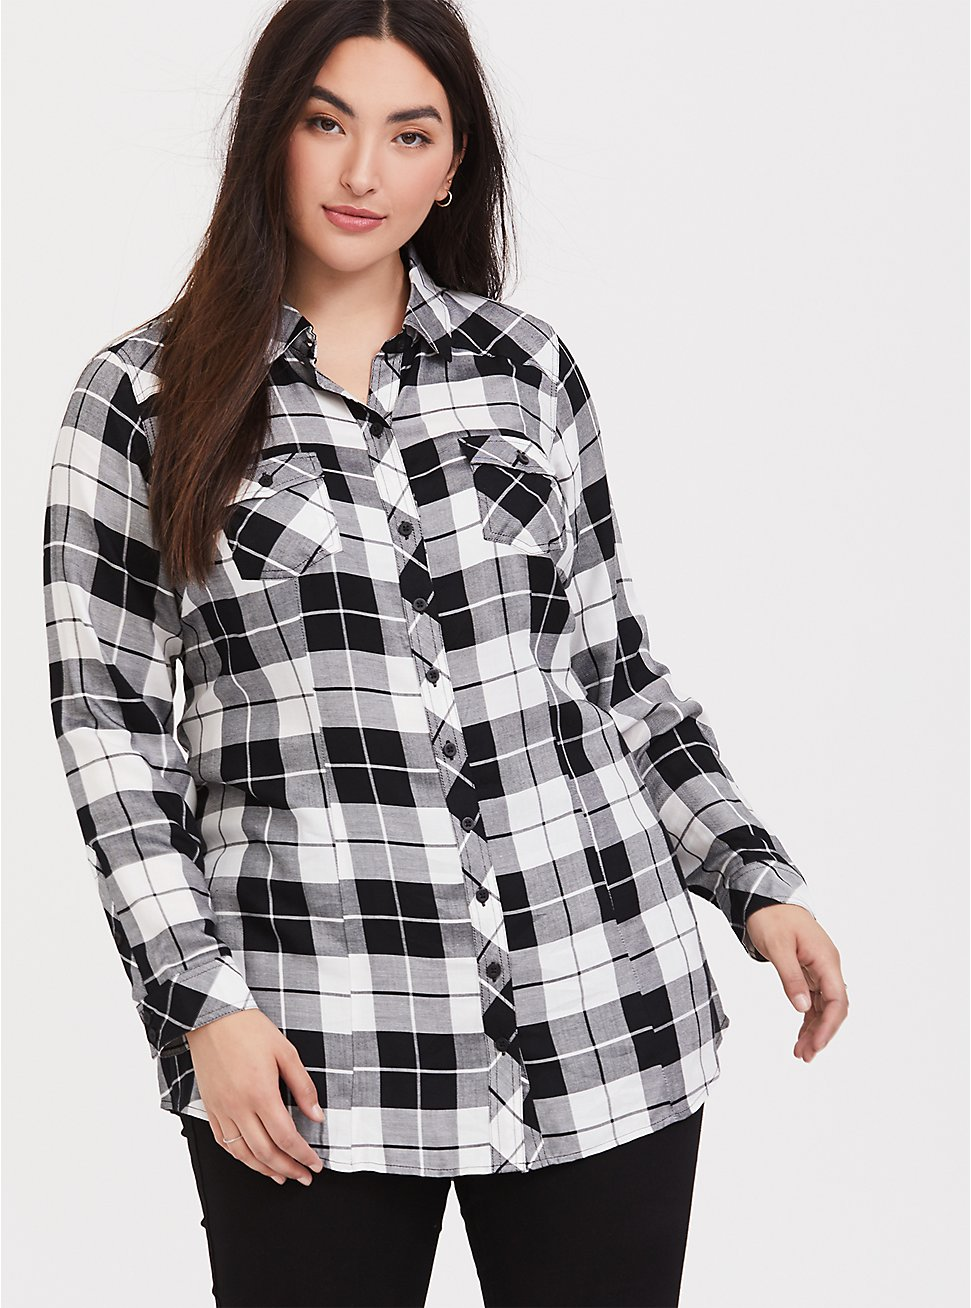 Taylor - Black & White Plaid Twill Button Front Slim Fit Tunic Shirt, MULTI, hi-res